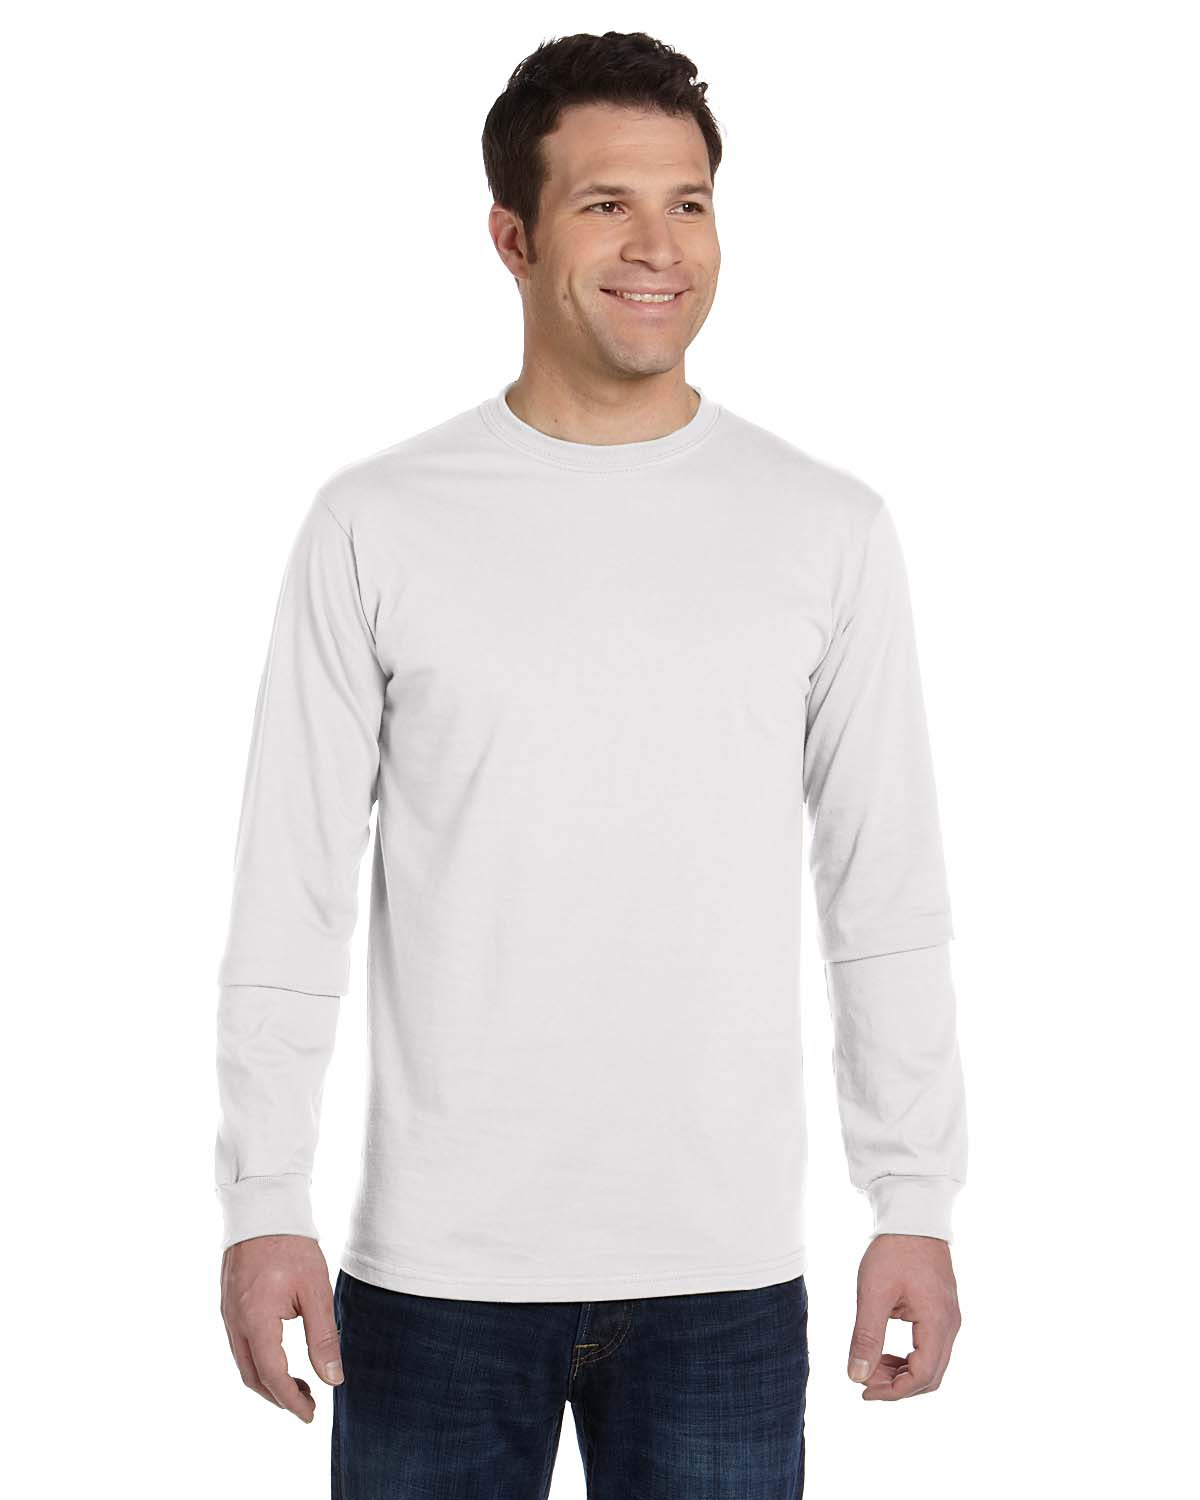 Men S Organic Cotton Ring Spun Long Sleeve T Shirt